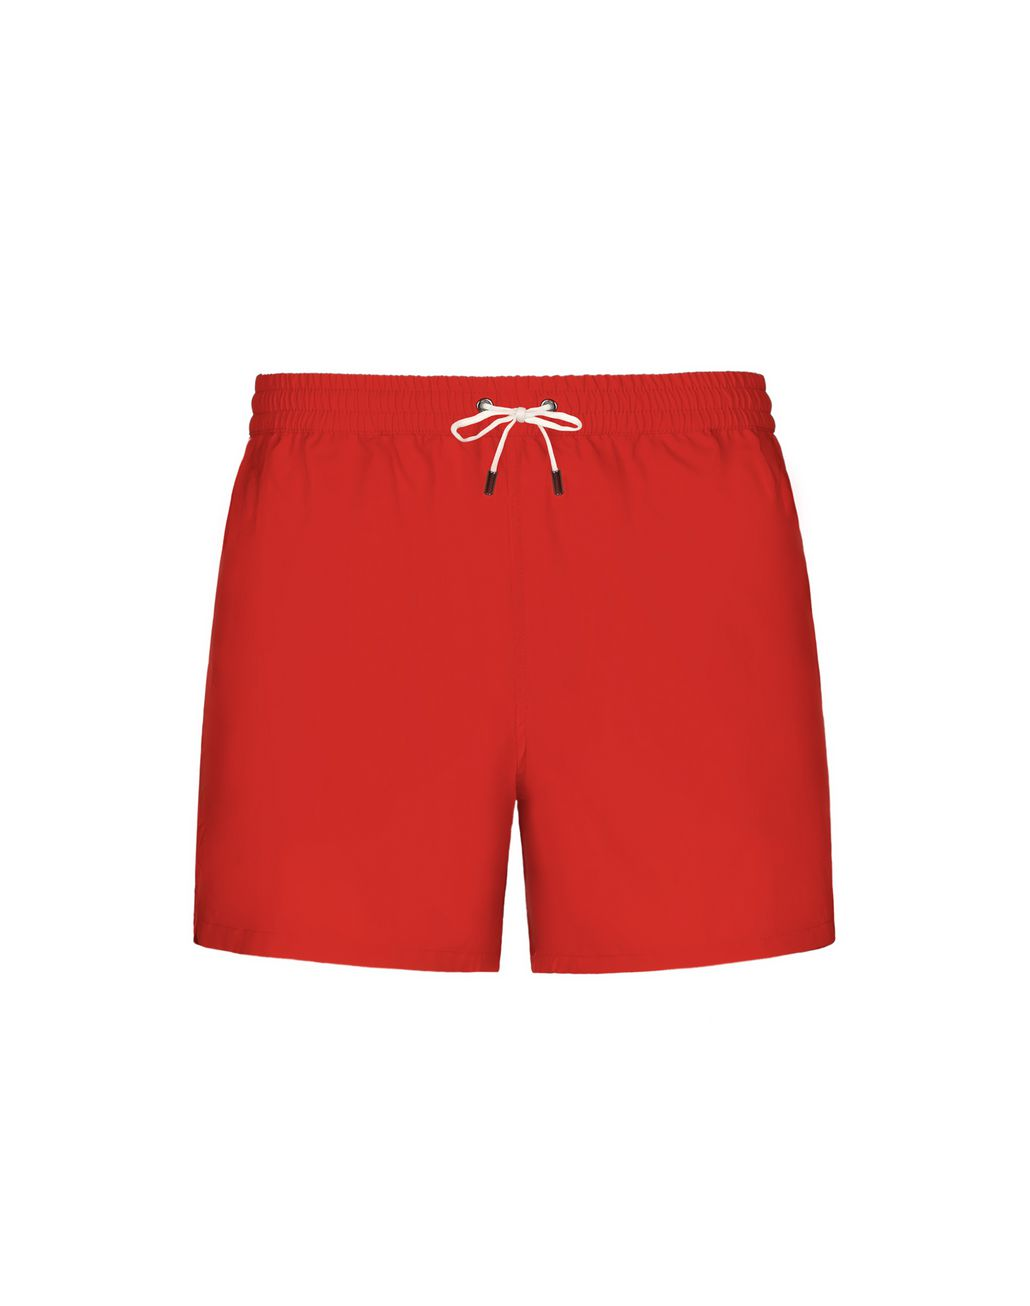 BRIONI Red Short Swims Short Beachwear Man f